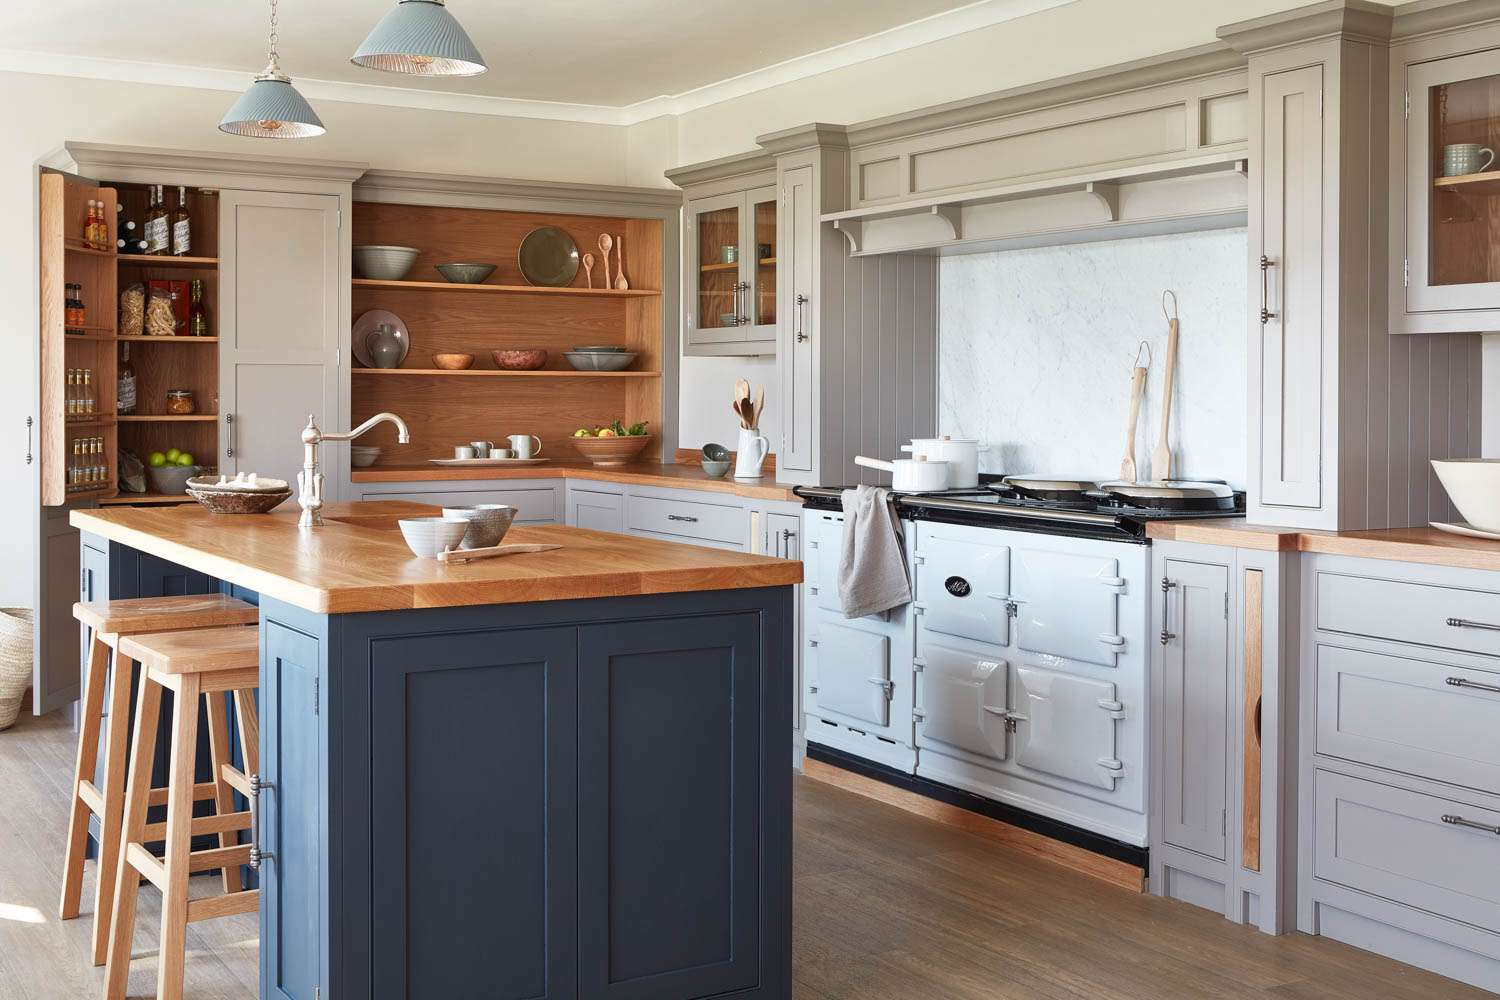 Kitchen with blue vintage stove.